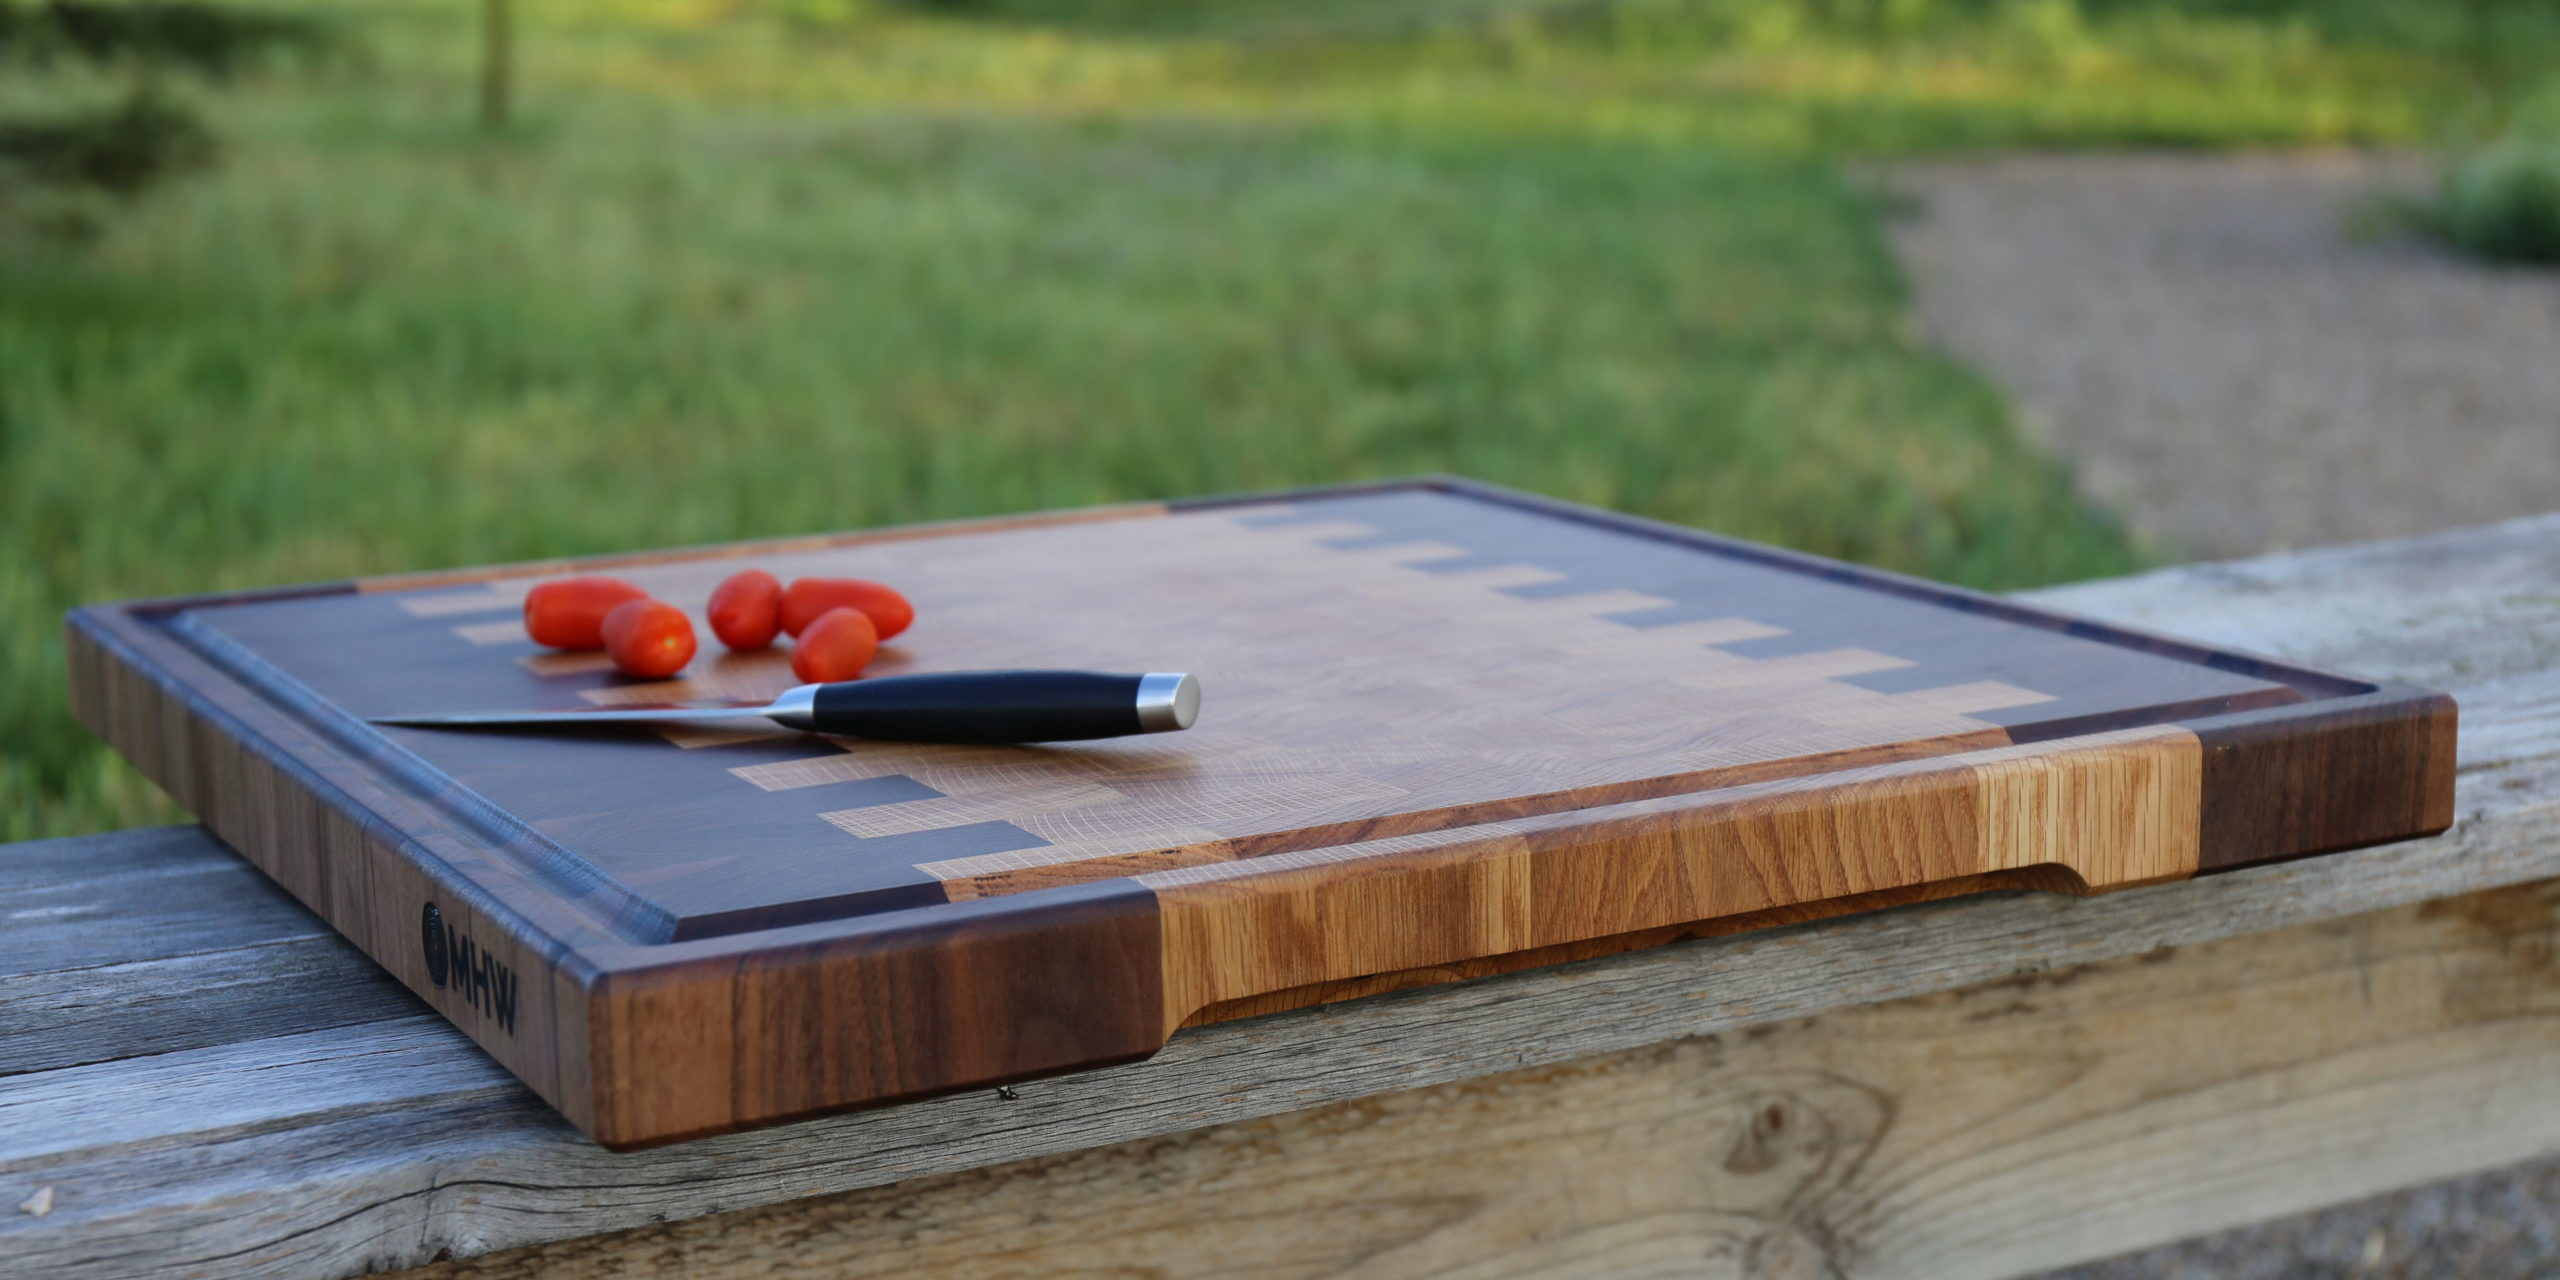 How To Remove Mold From A Cutting Board